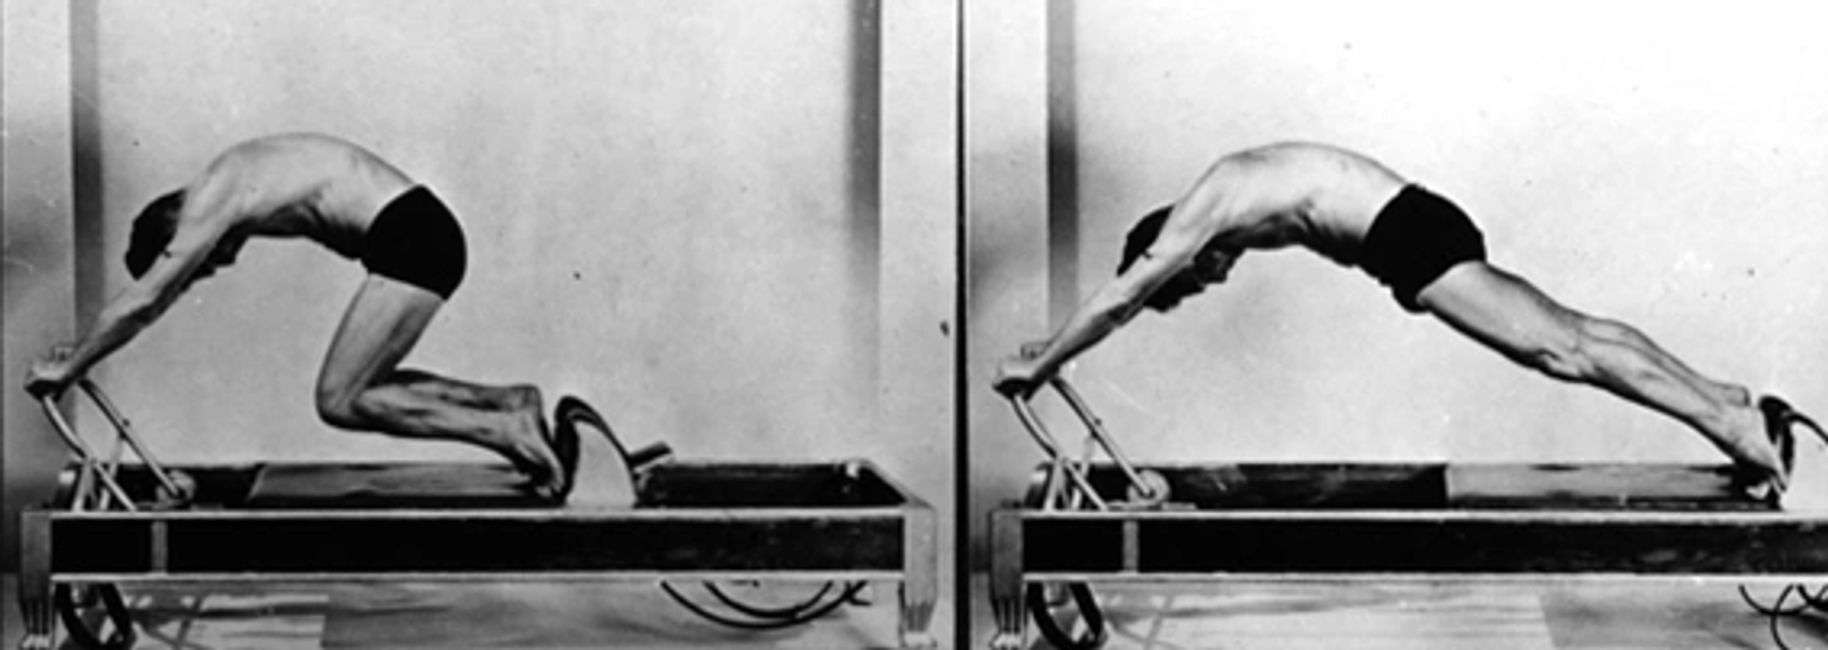 Joseph Pilates performing knee stretches.